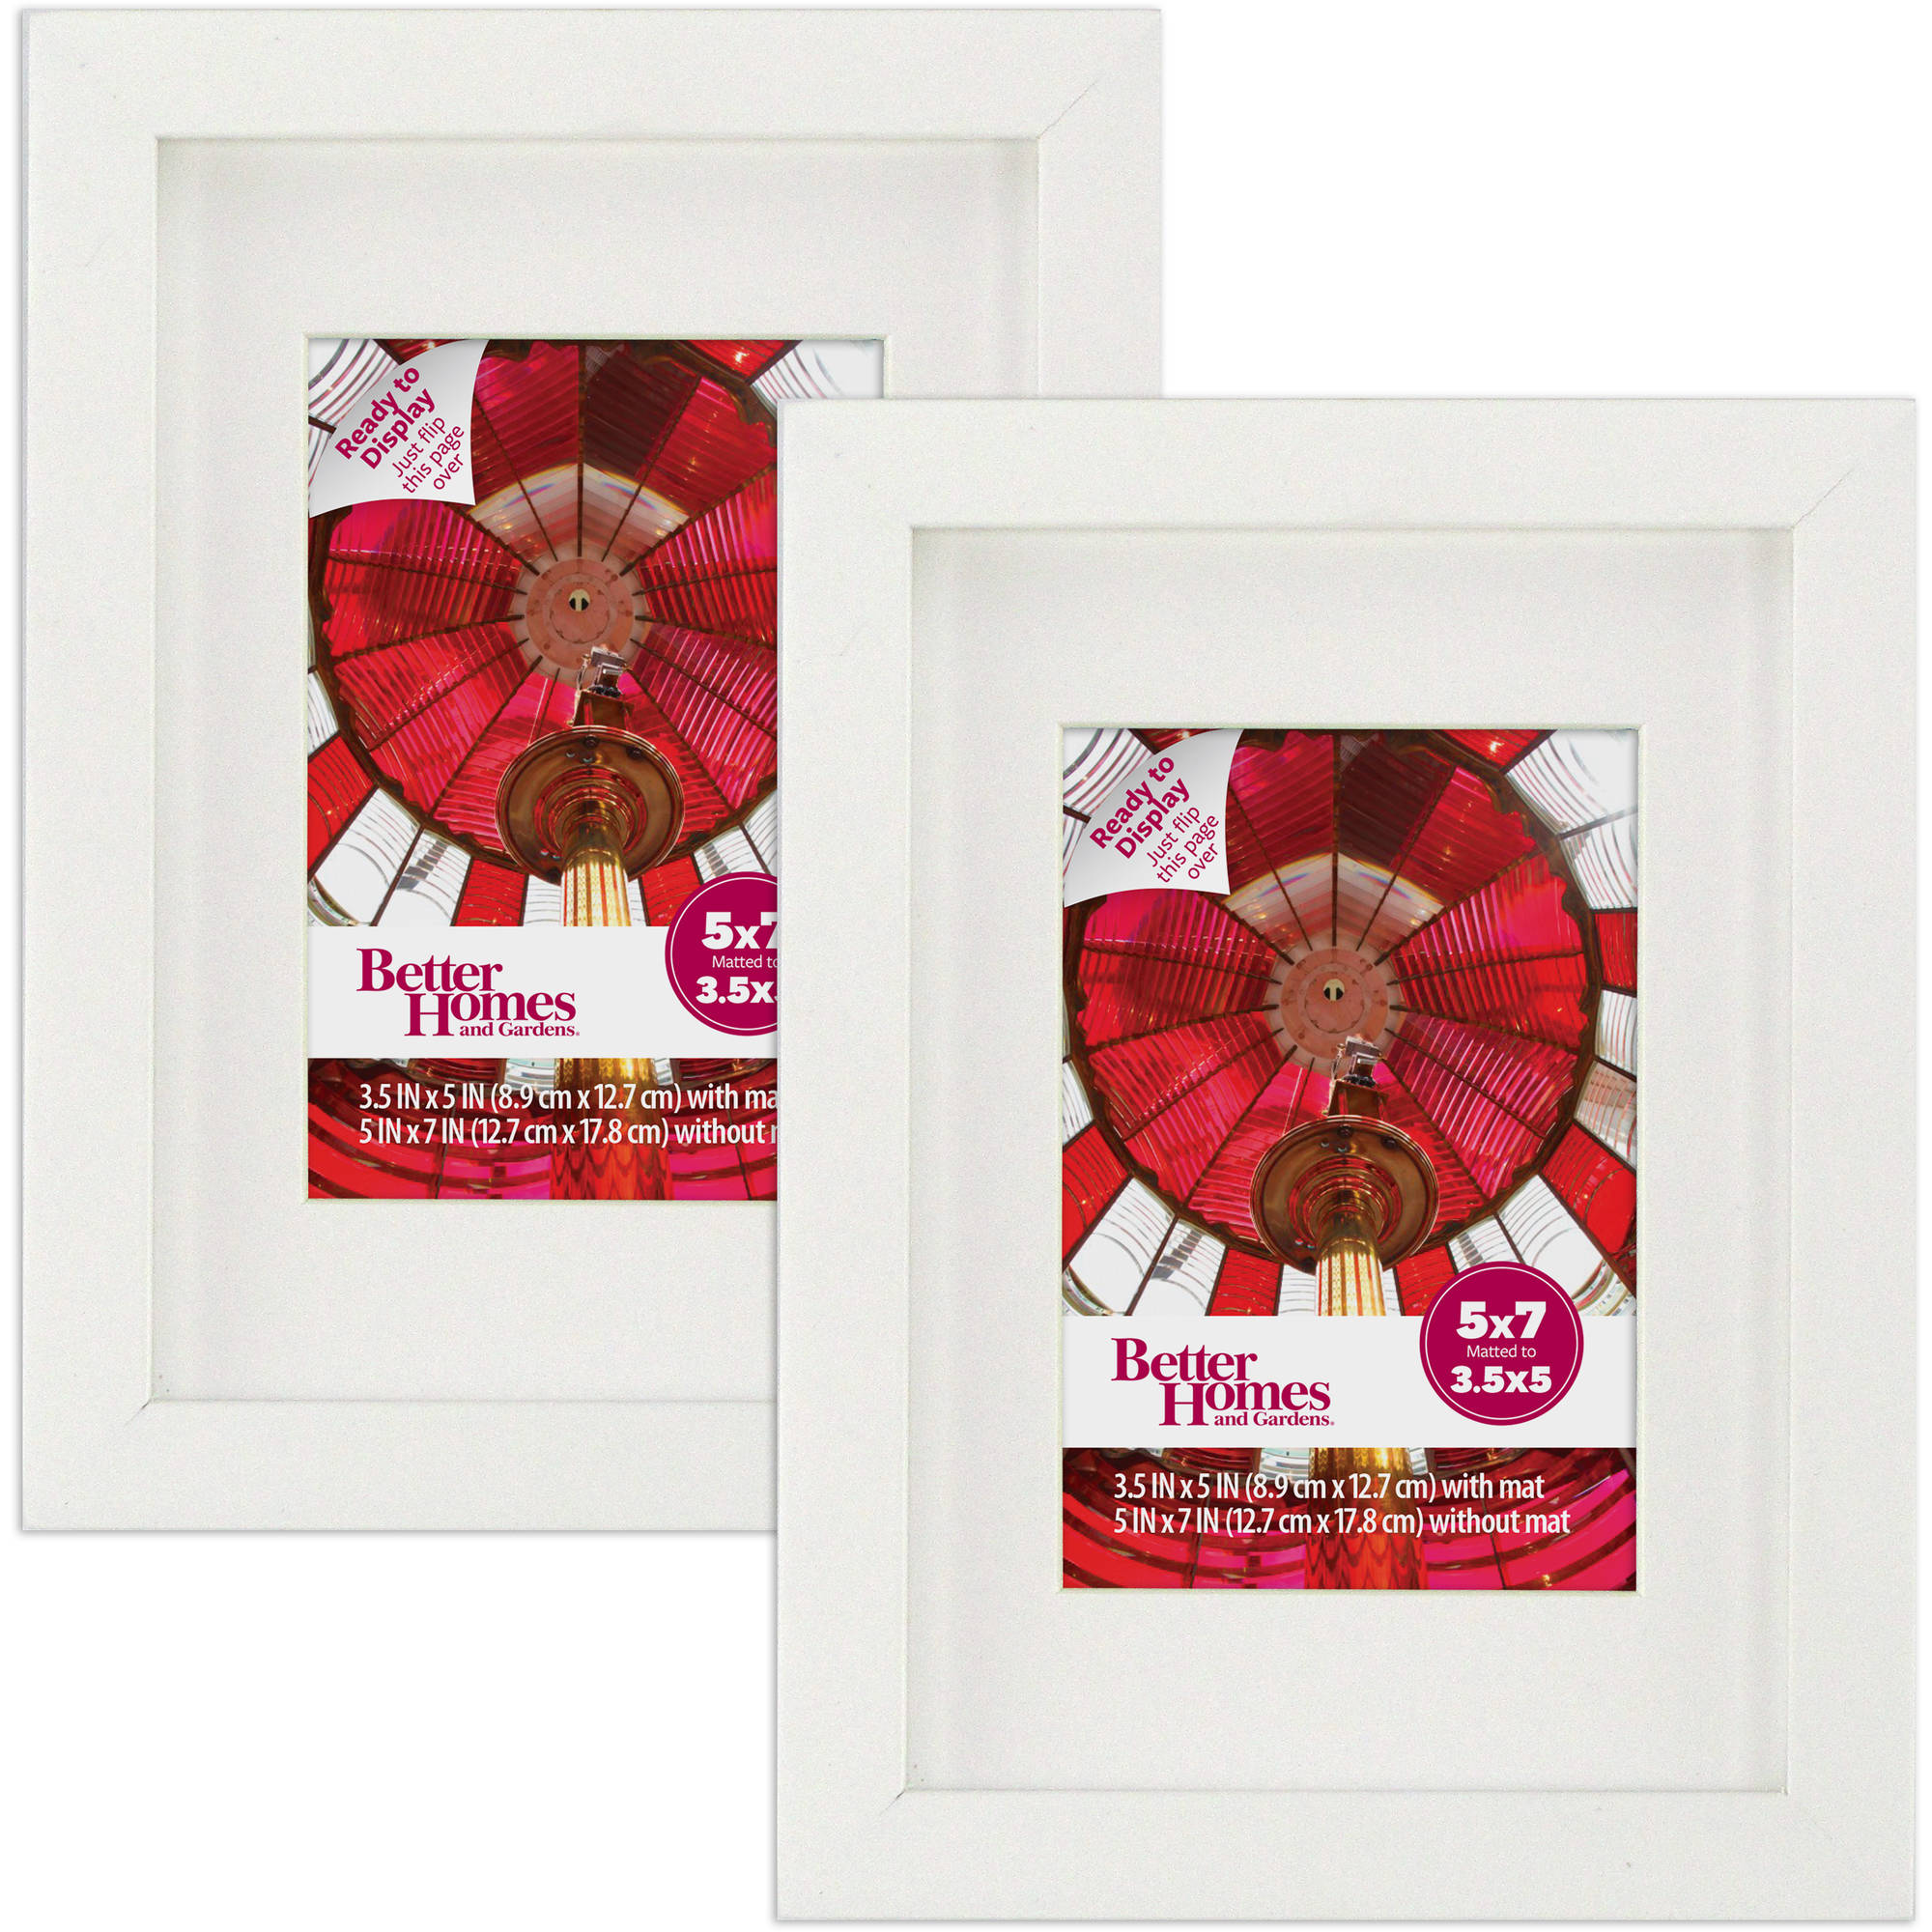 Better Homes and Gardens 5x7 Frame, Set of 2 - White Finish